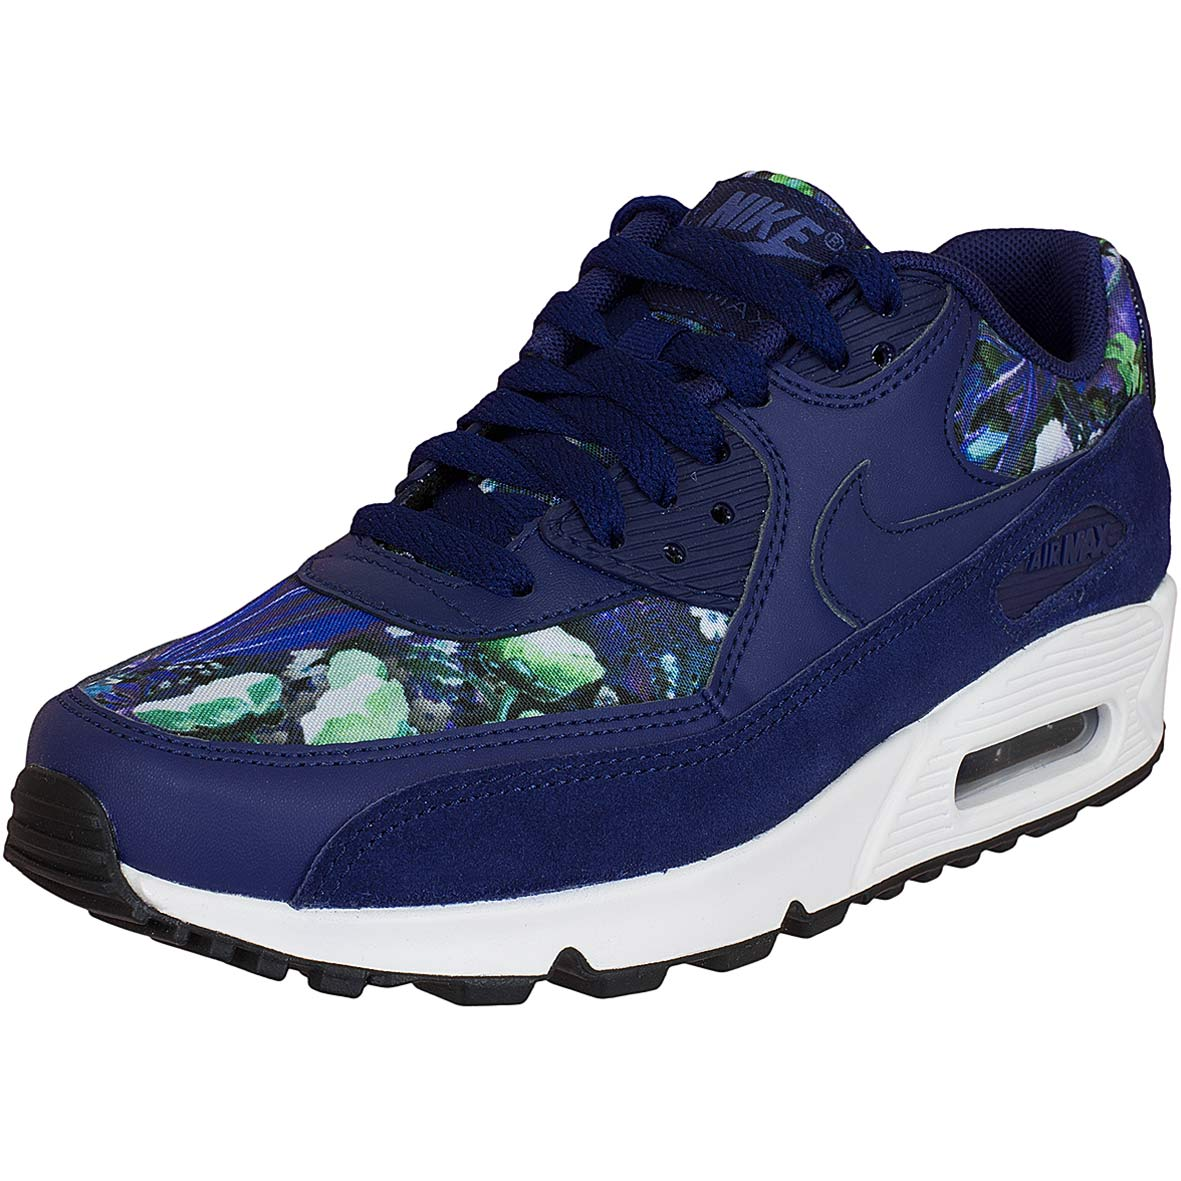 official store new collection fashion style Nike Damen Sneaker Air Max 90 SE blau